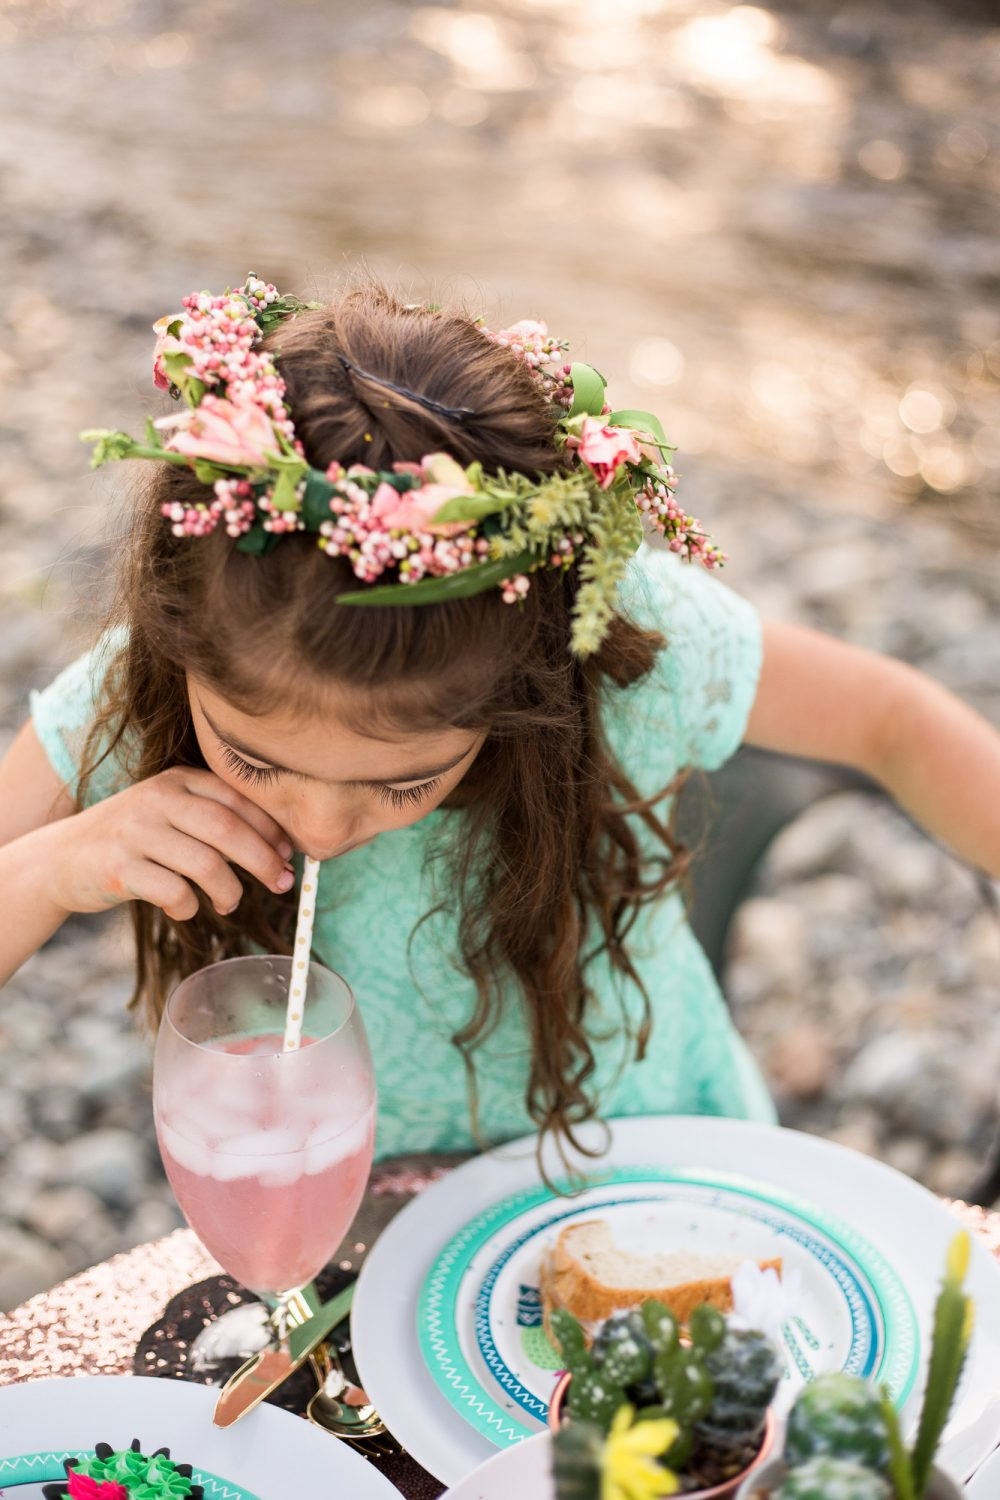 Learn how to make your own flower crowns for a princess party for tea party! A cute party favor too!